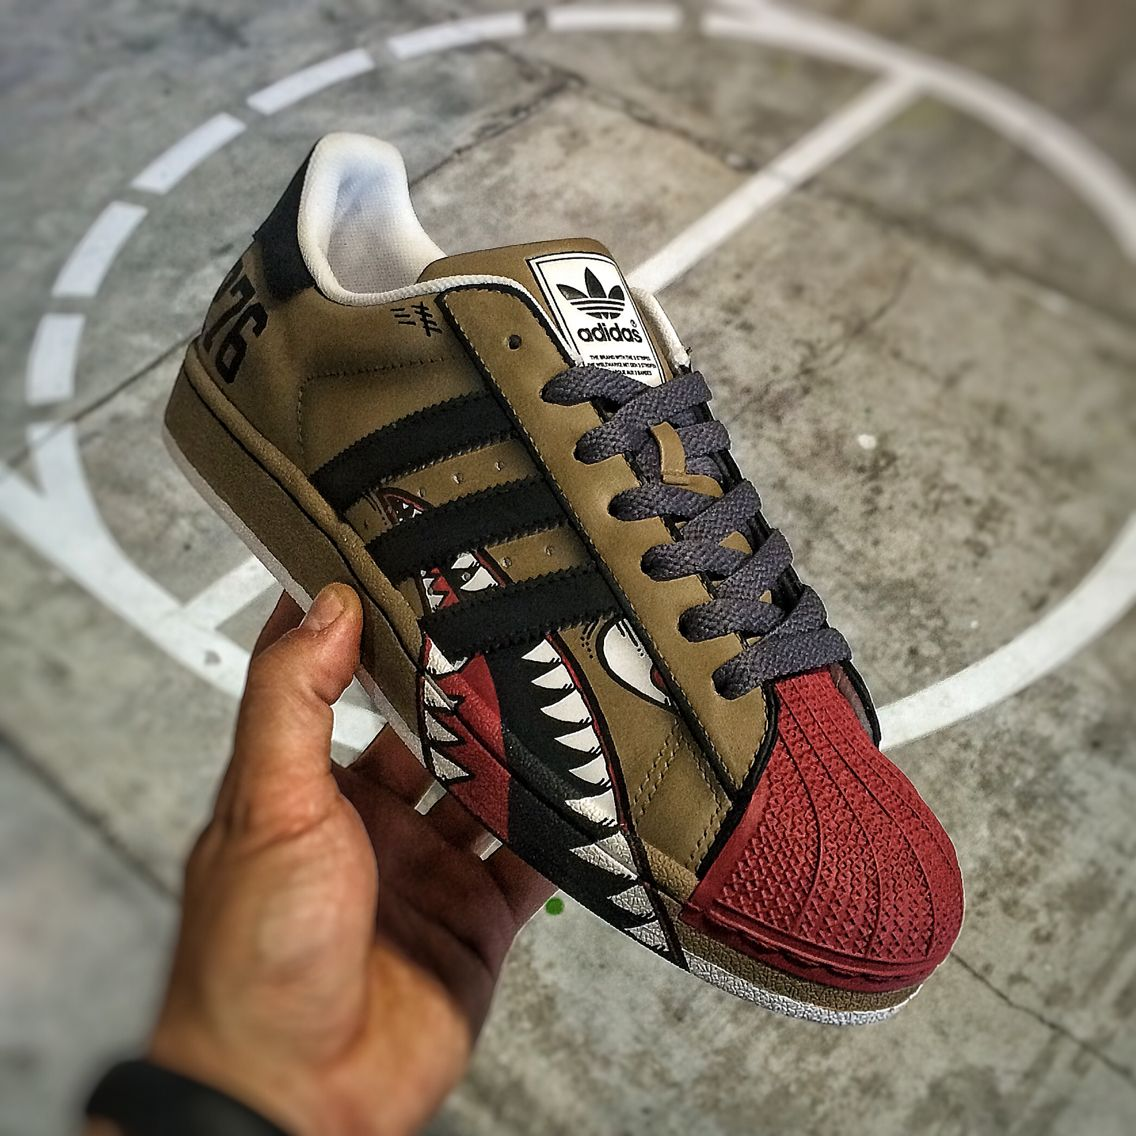 Custom Adidas Superstar II